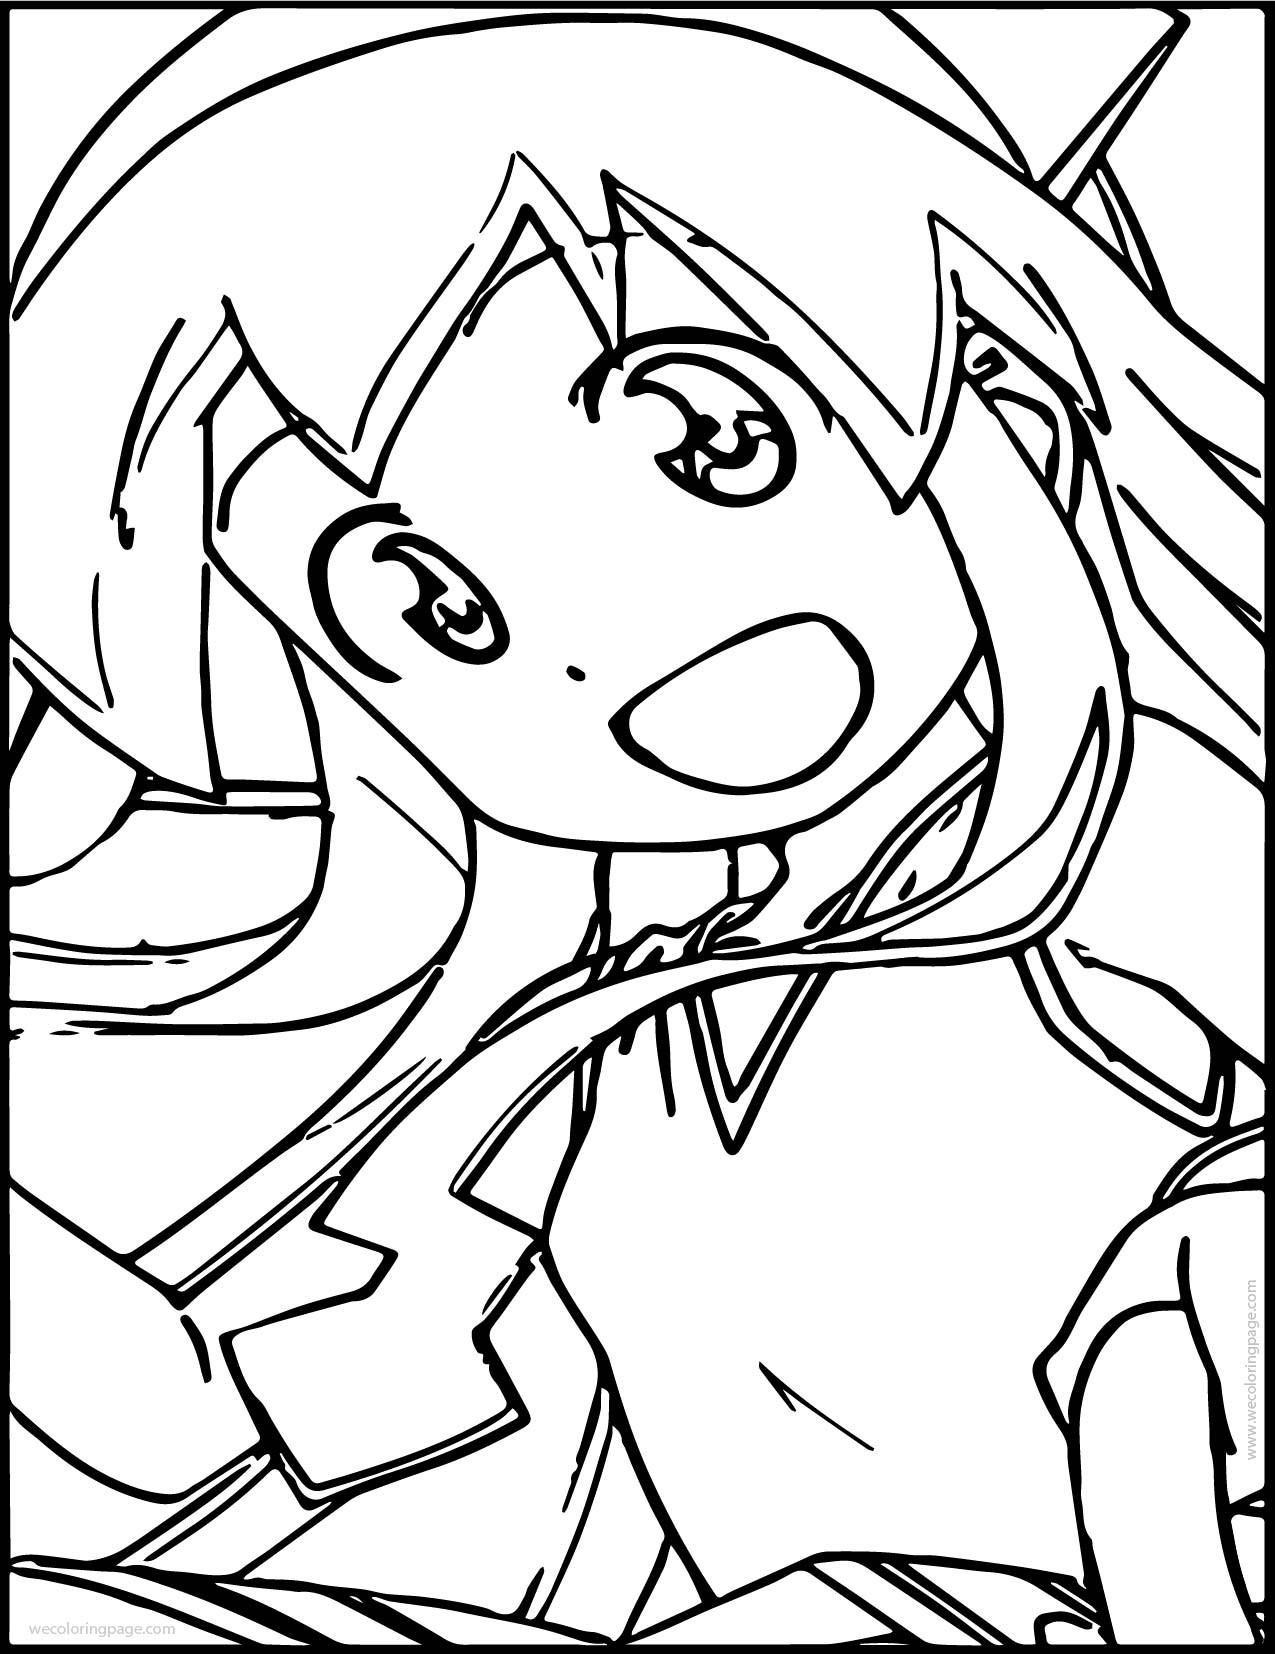 Best ideas about Squid Coloring Pages . Save or Pin Squid Girl Picture Coloring Page Now.